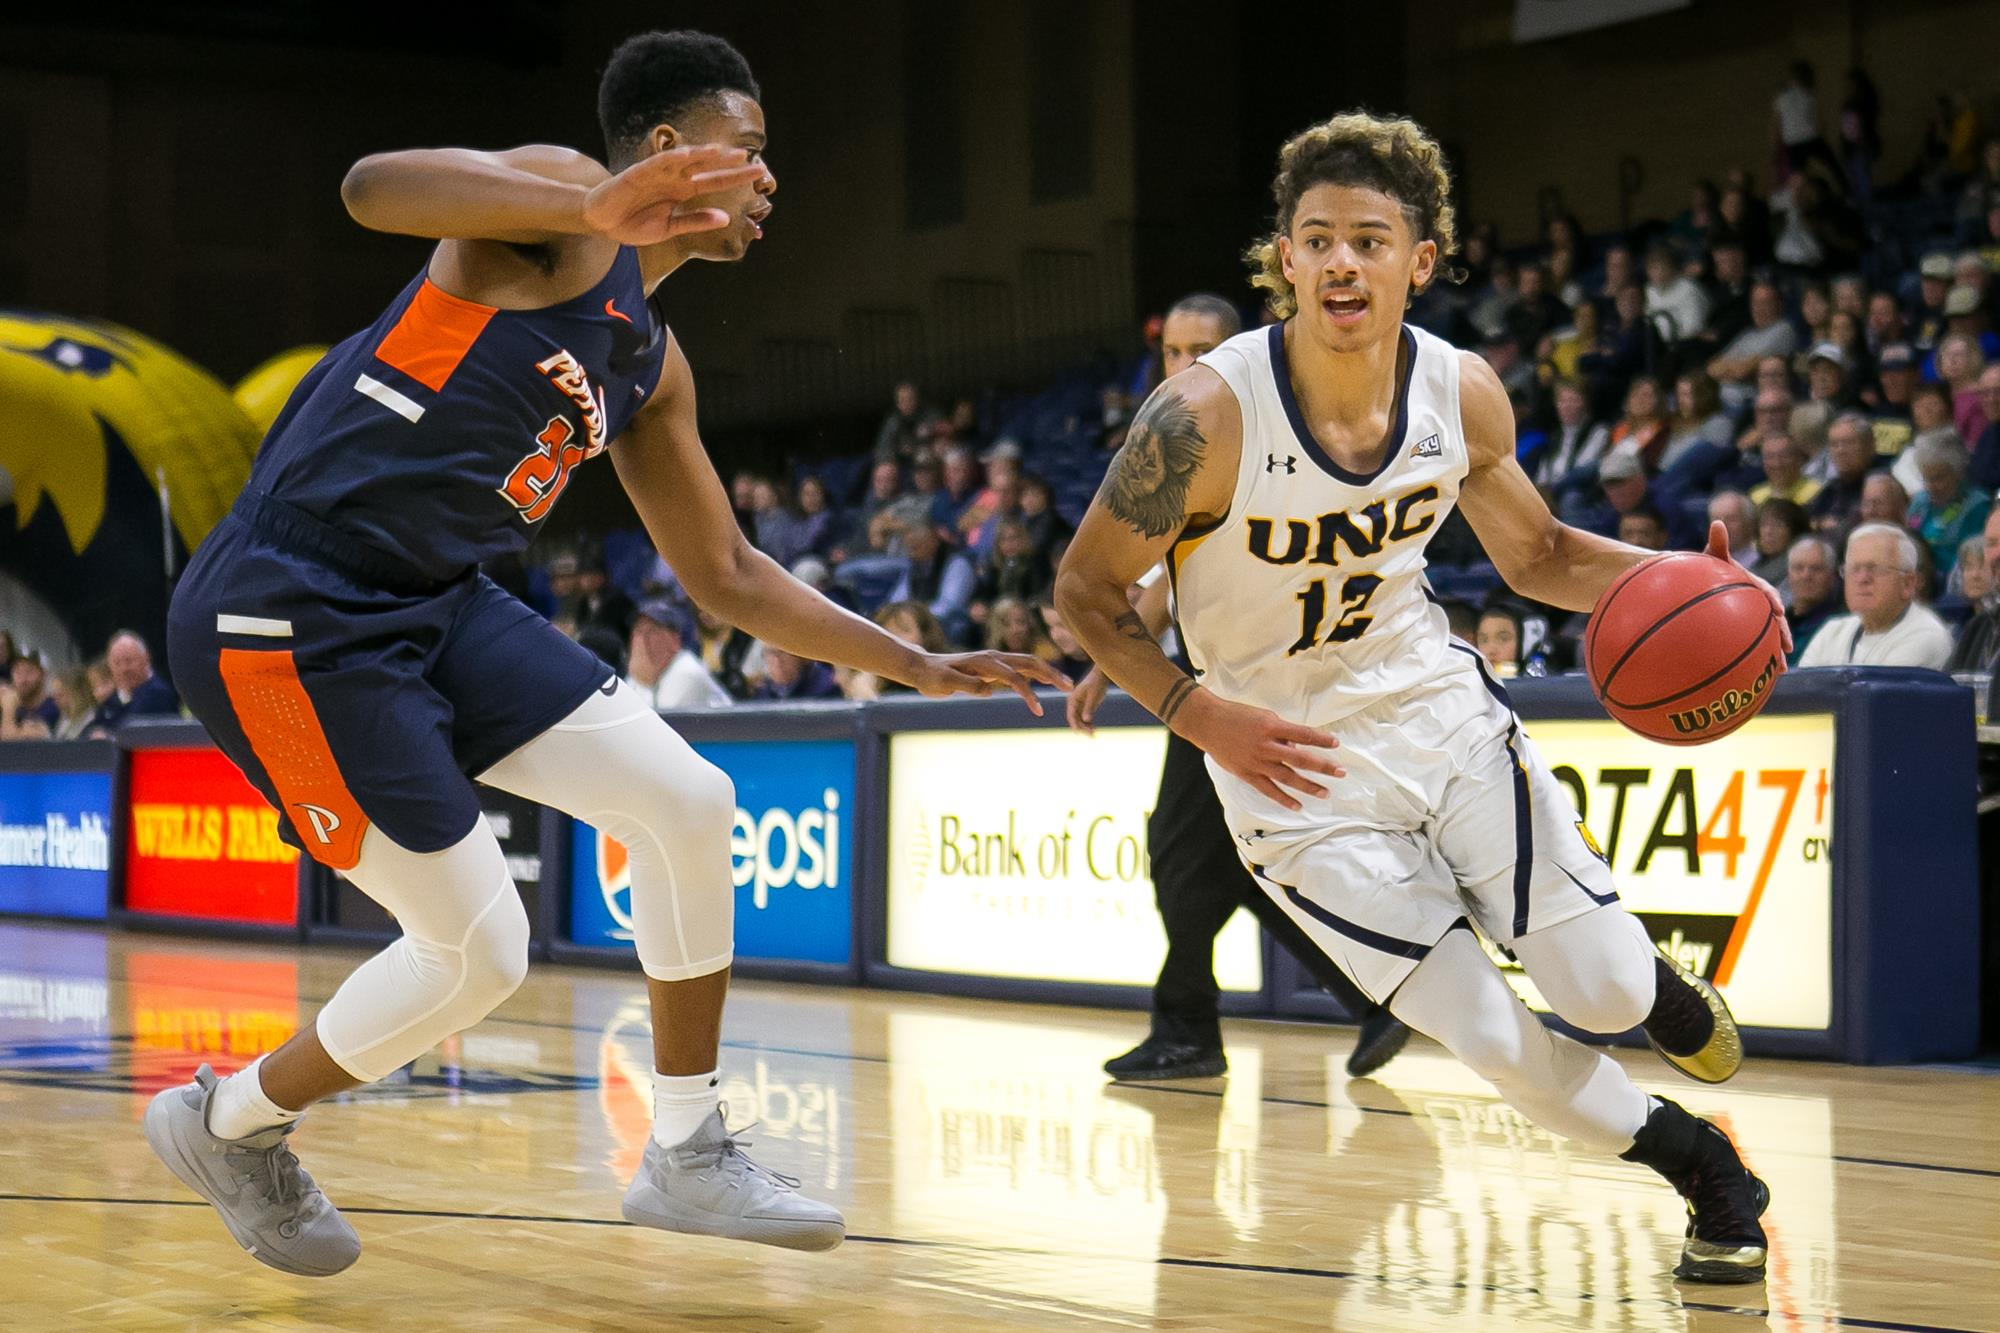 takes the fight to the Vikings - University of Northern Colorado ...